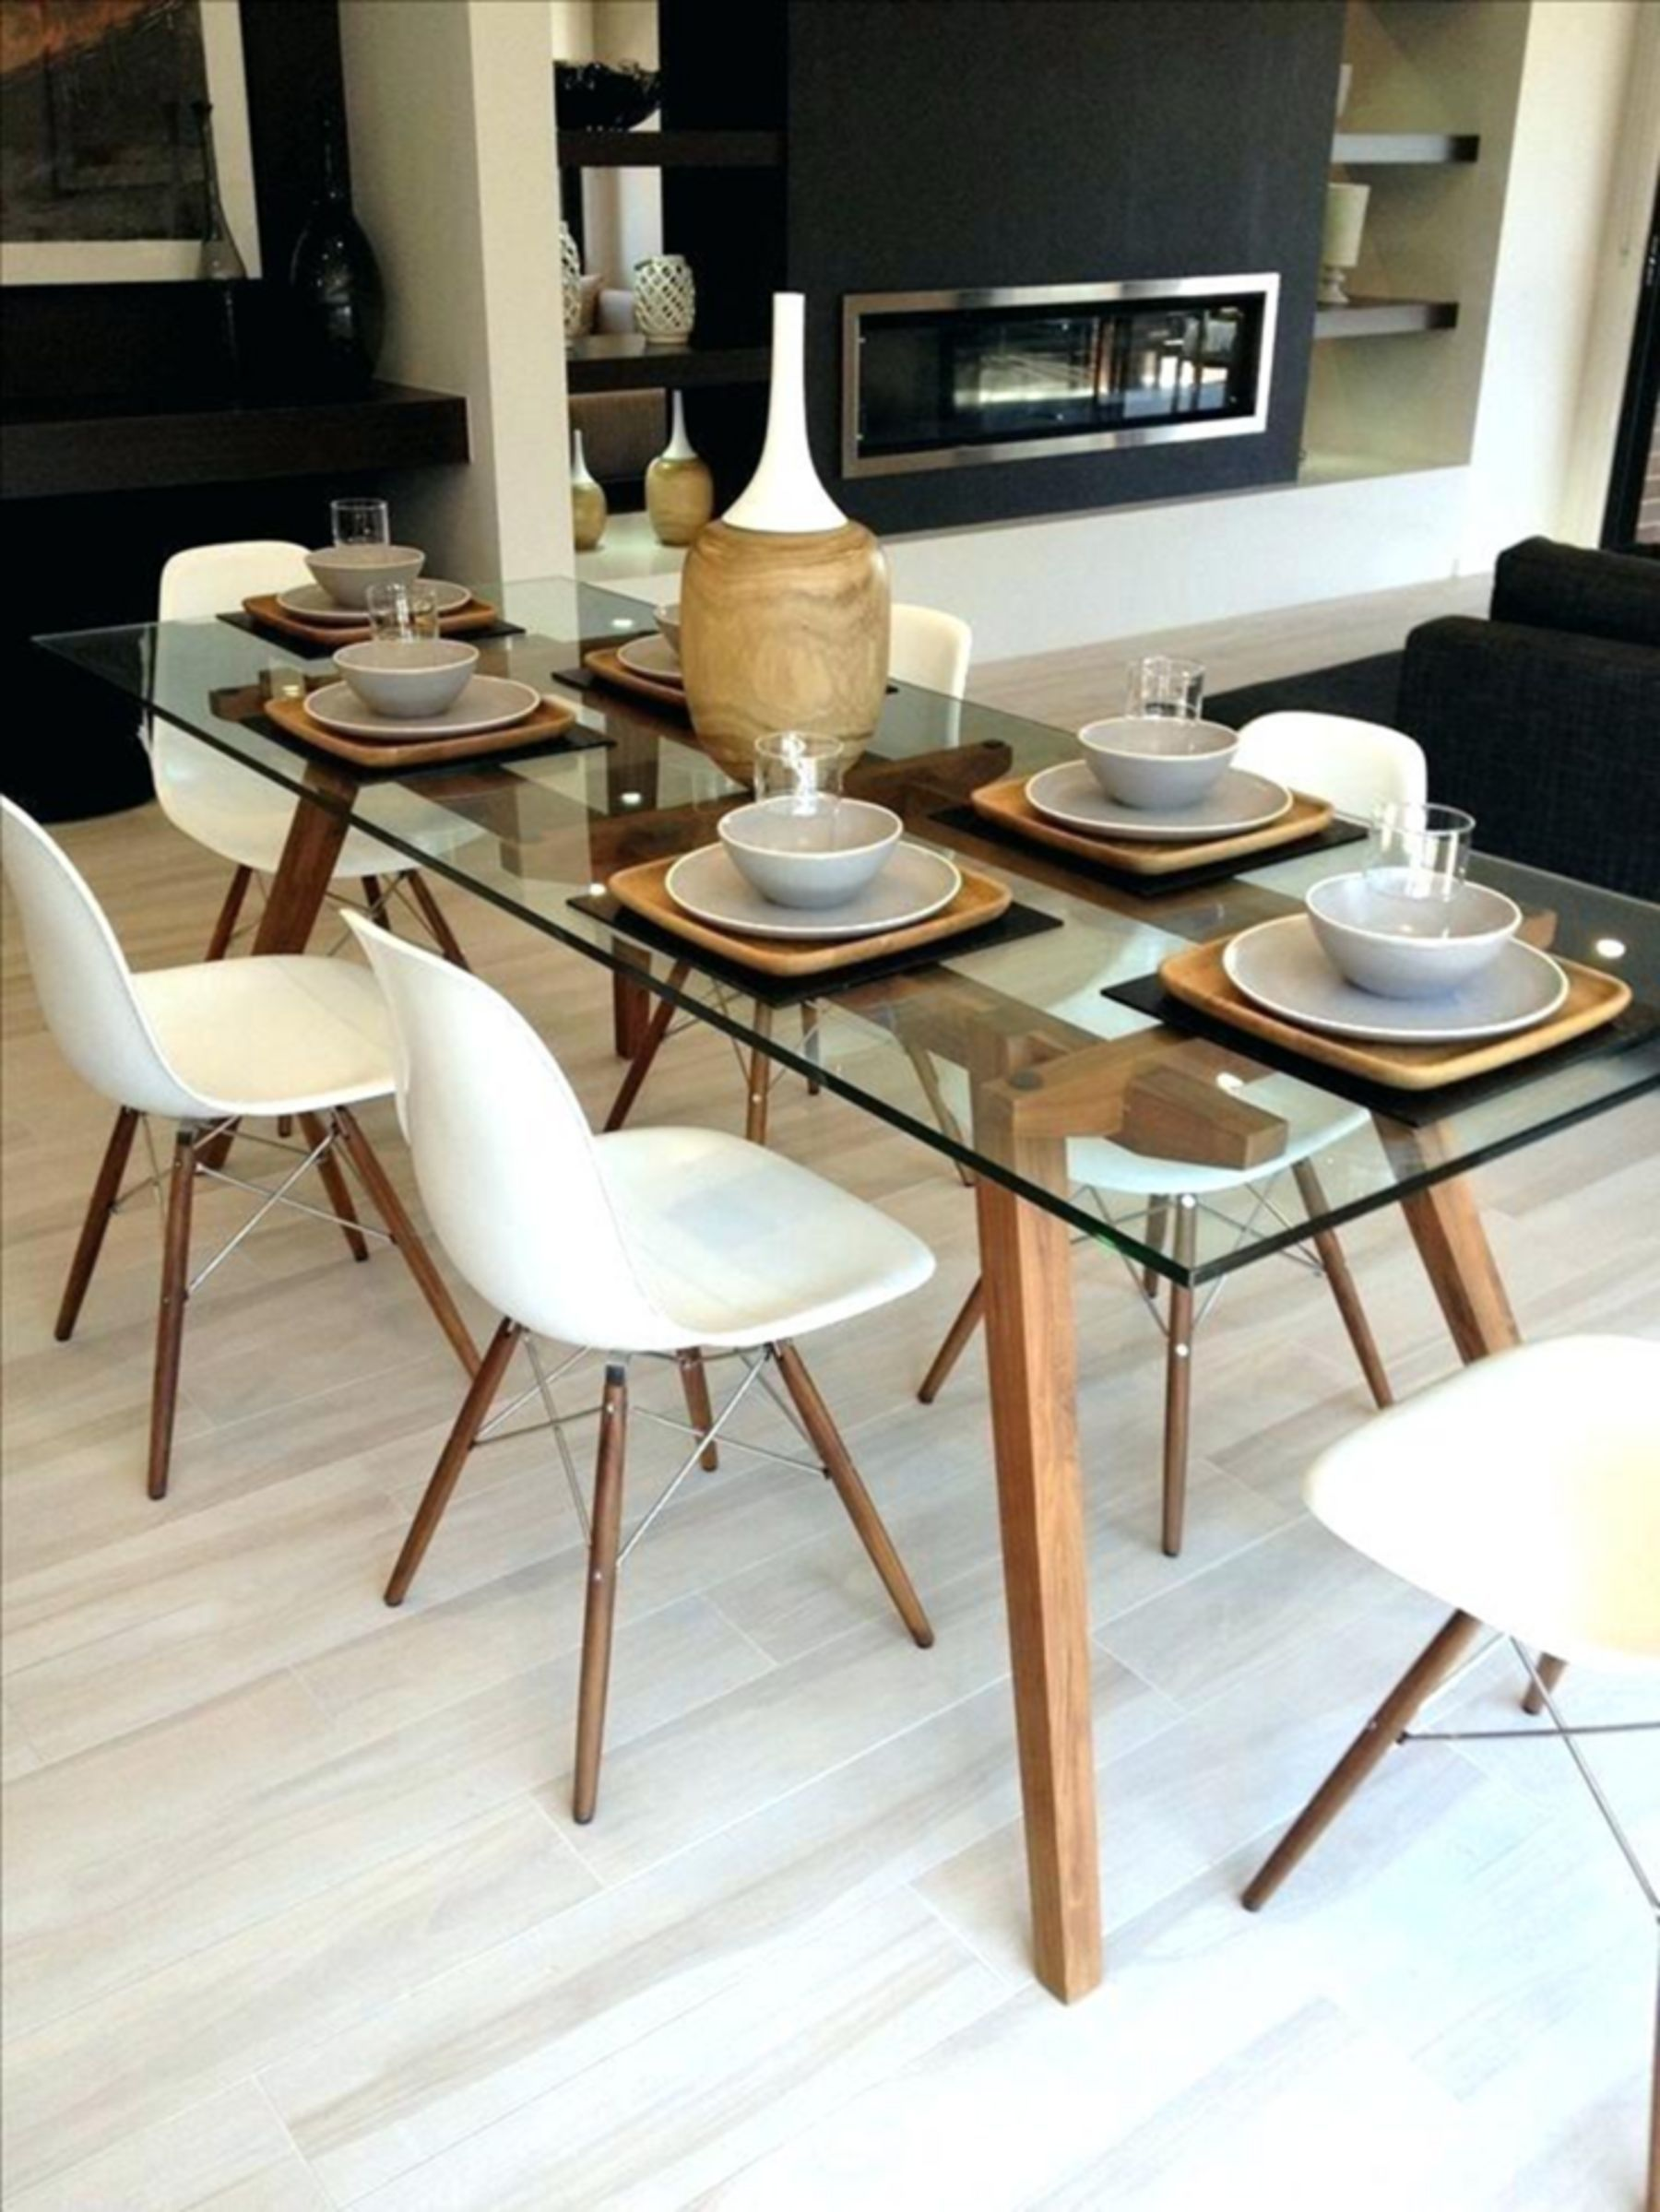 Top 12 Creative Dining Table Design Ideas To Make Your Dining Room Beautiful Dining Room Table Set Glass Dining Room Table Eames Dining